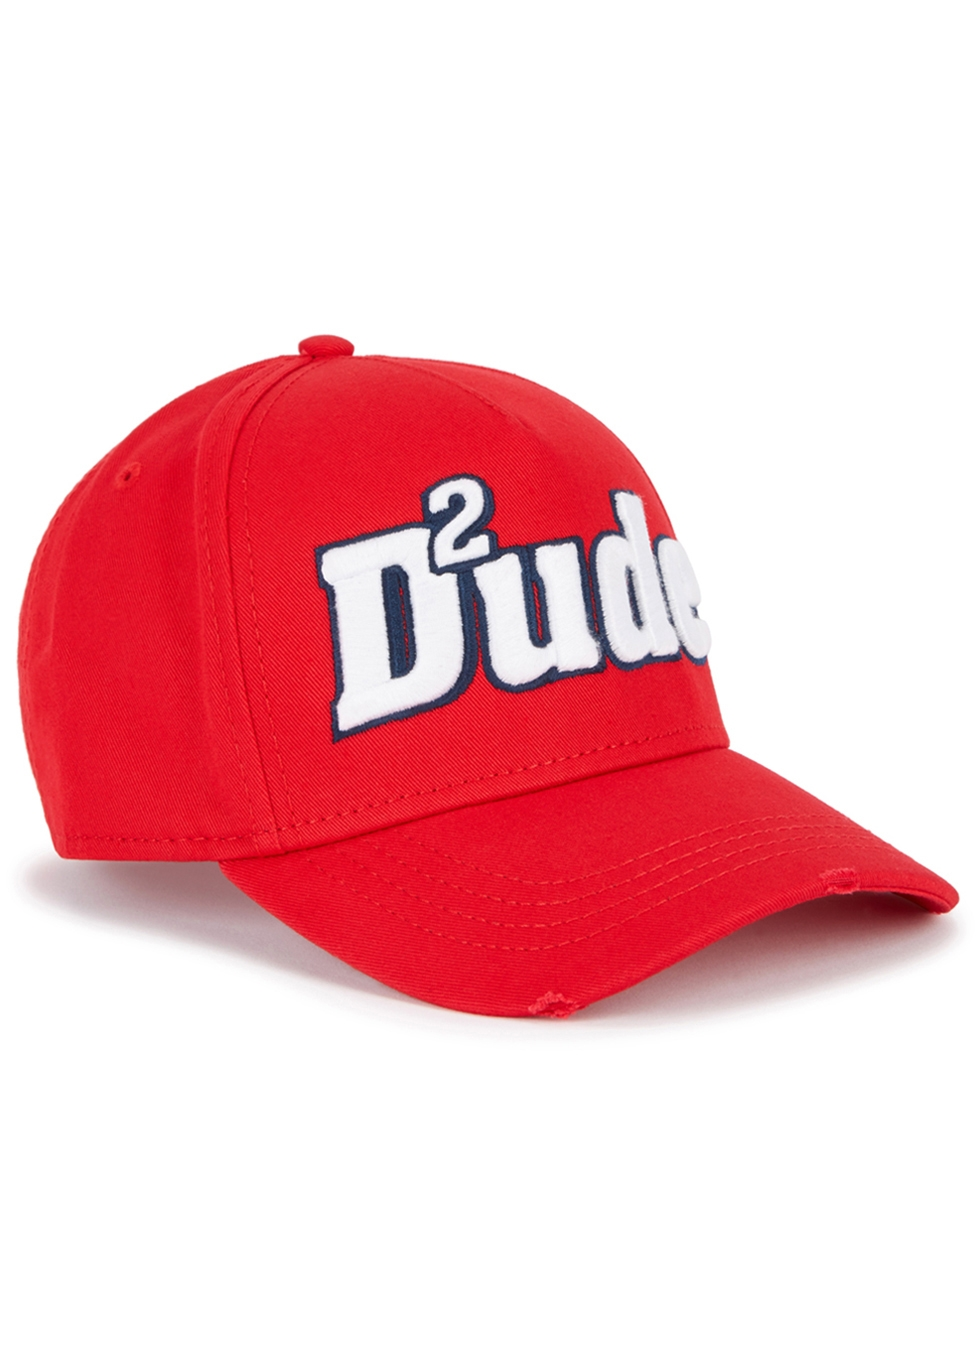 DSQUARED2 DUDE EMBROIDERED TWILL CAP